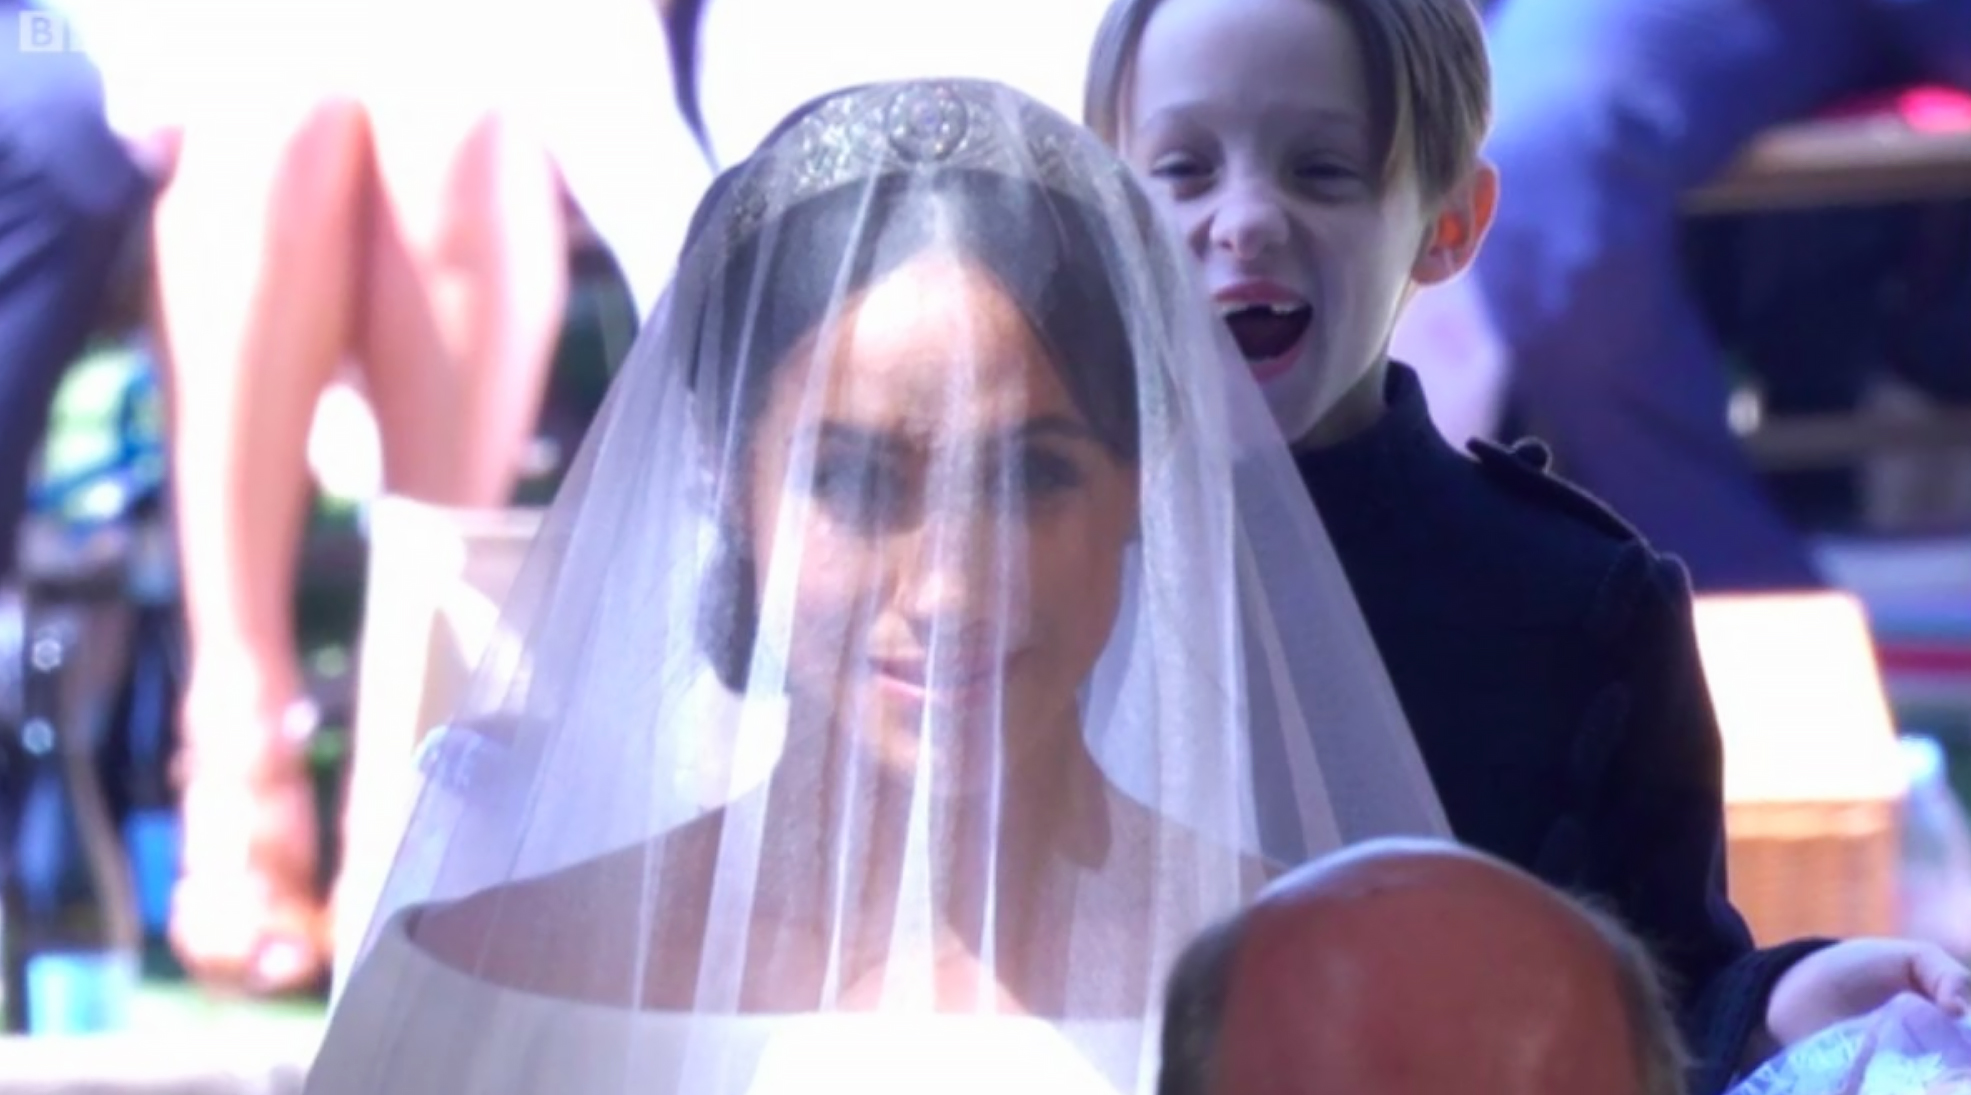 Royal Wedding Memes.Royal Wedding Memes Excited Pageboy Pippa S Iced Tea Dress And More